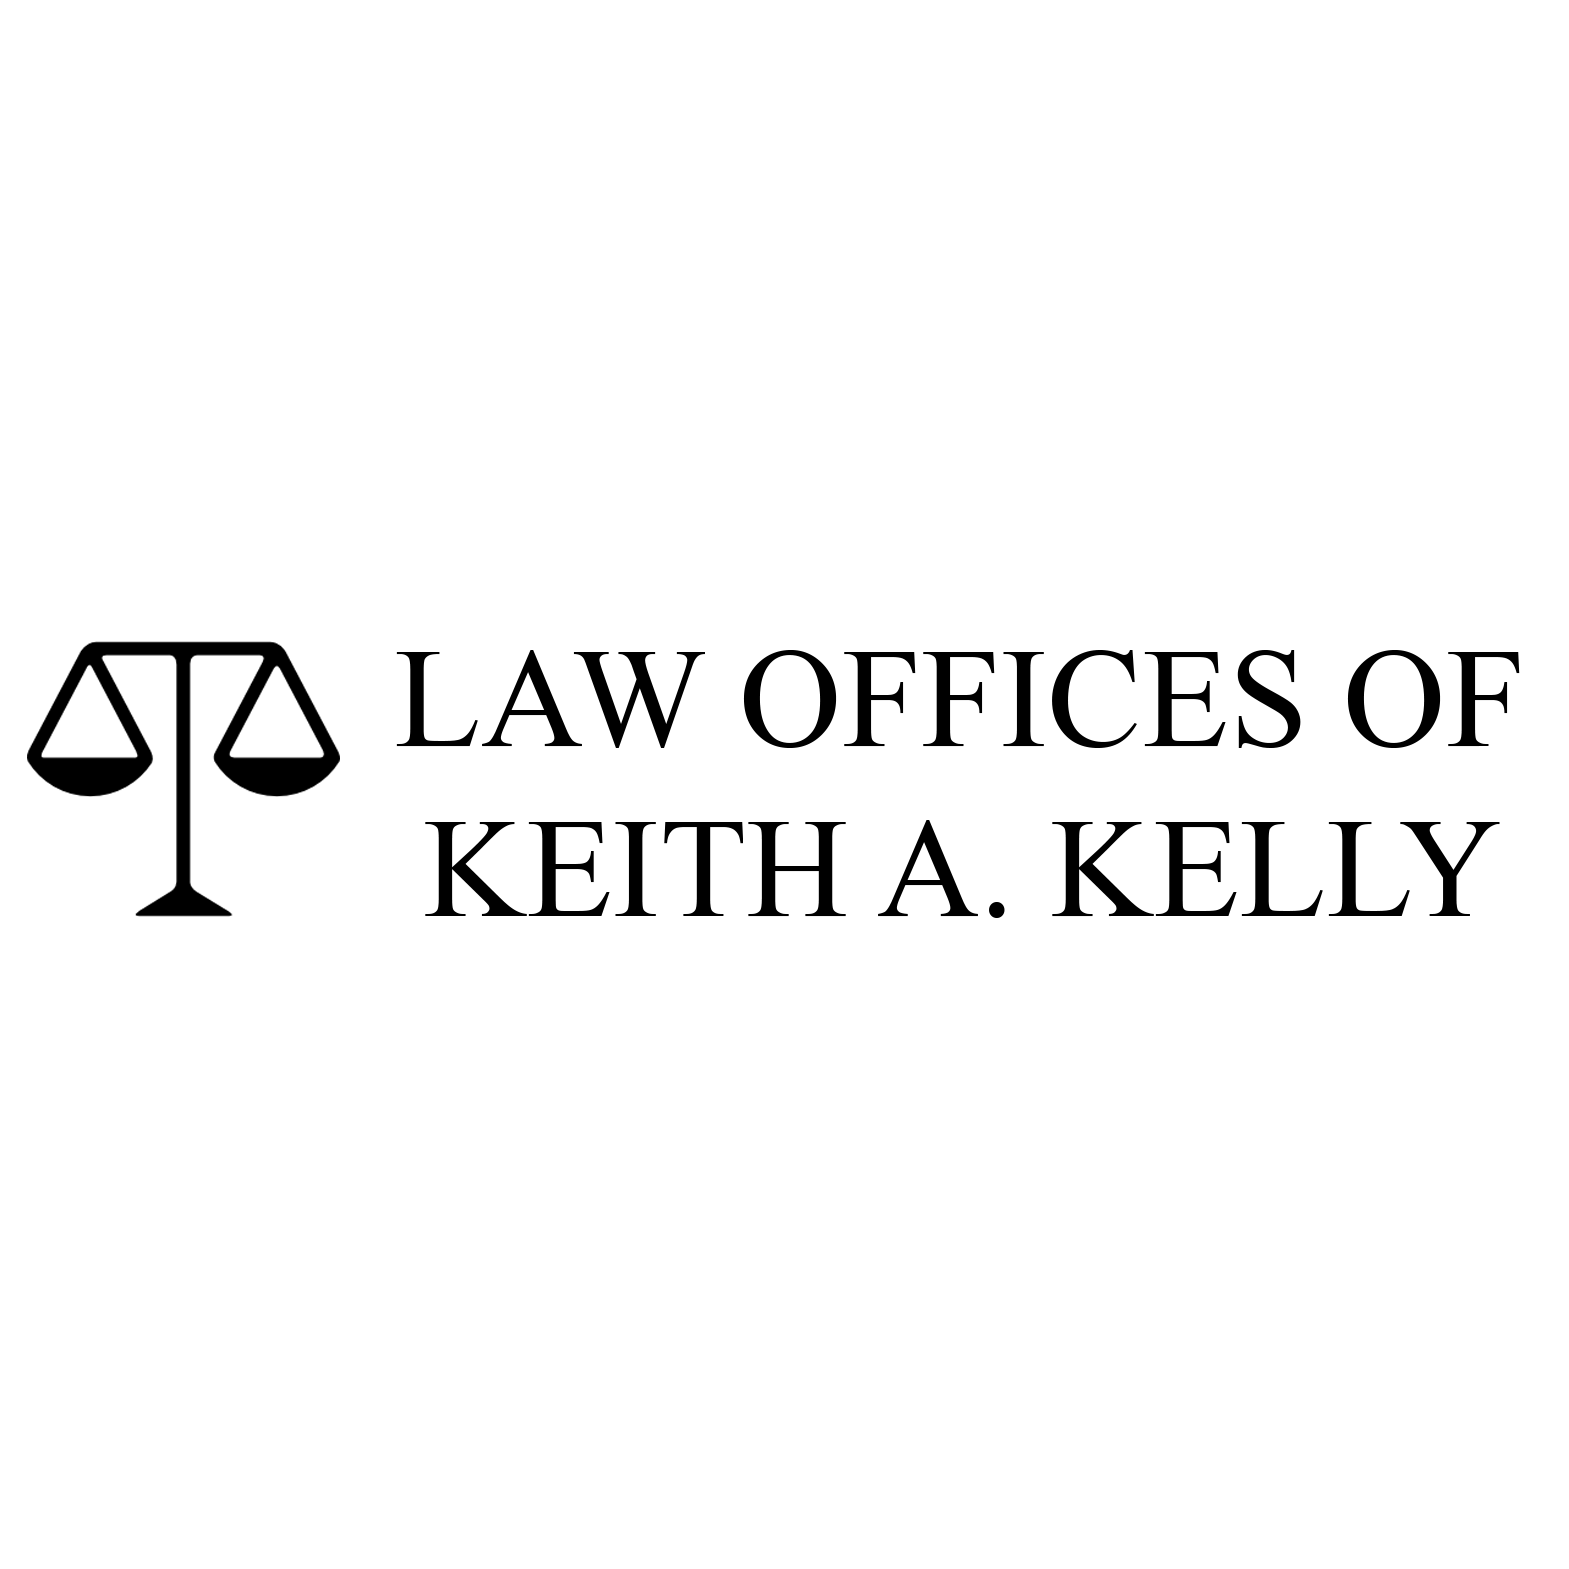 Law Offices of Keith A. Kelly